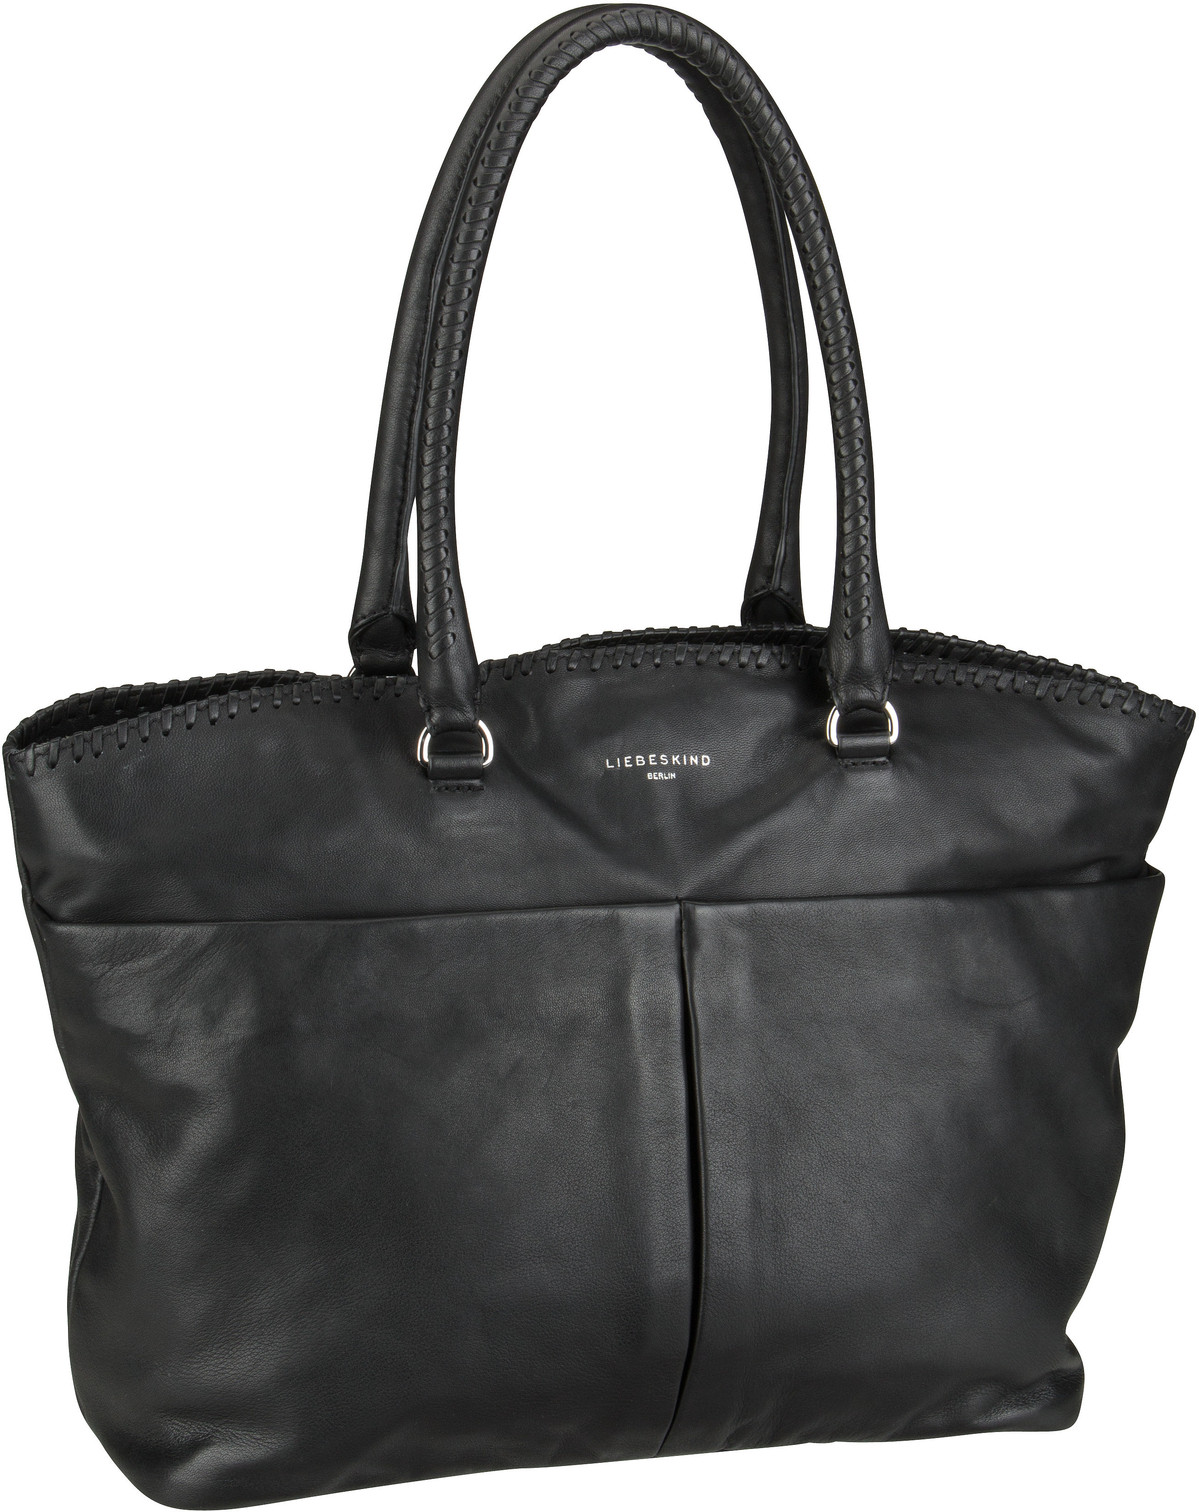 Berlin Handtasche Pleat Shopper L Black